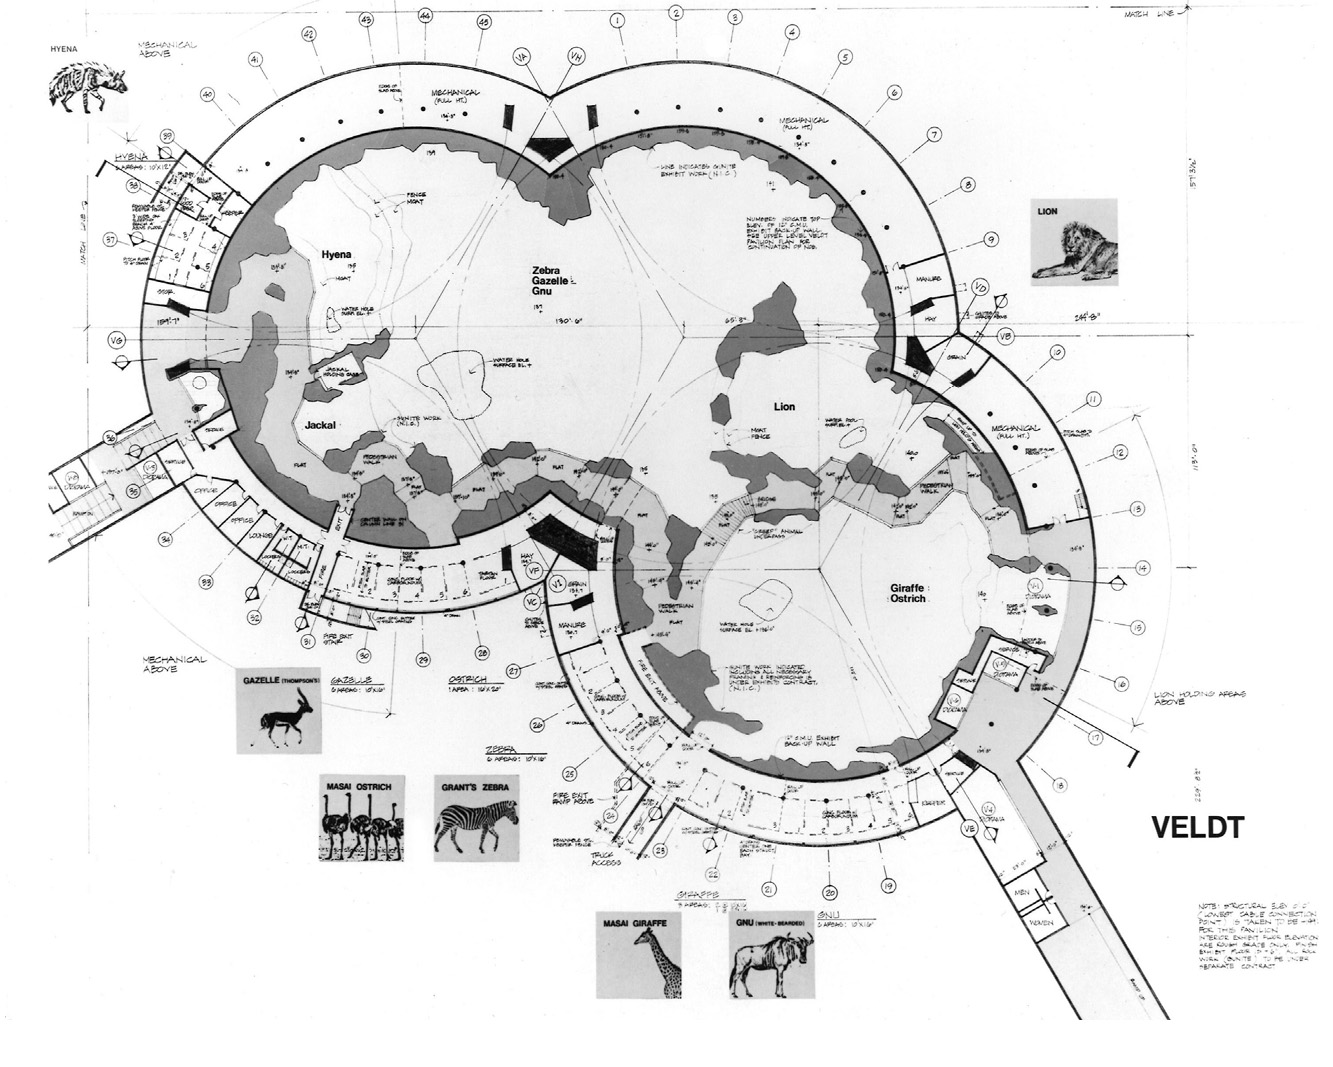 Plan detail of largest pavilion